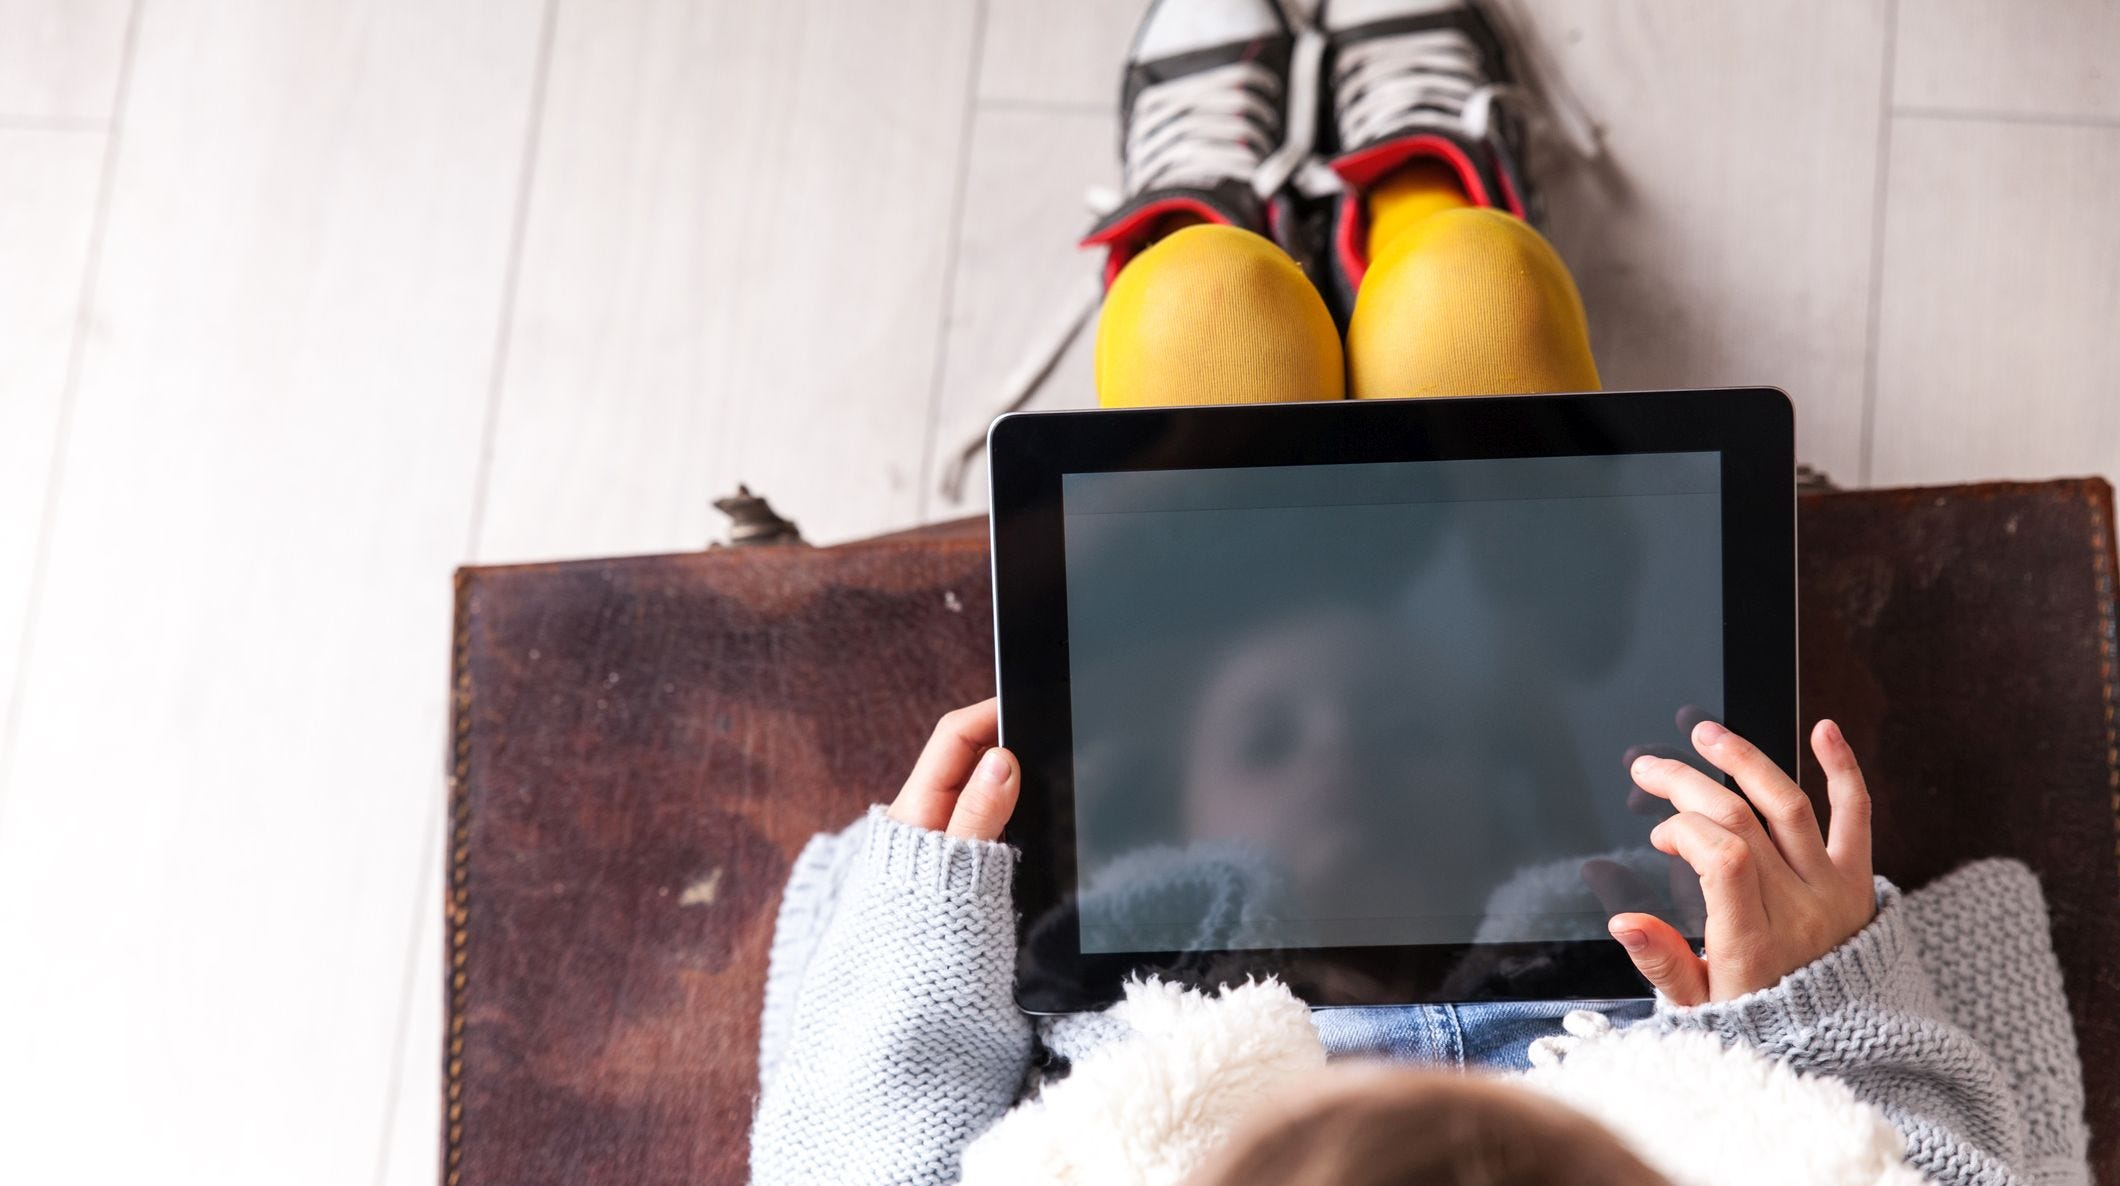 When Apple device users upgrade to iOS 12, Screen Time can help parents monitor their kids activity and set App Limits.